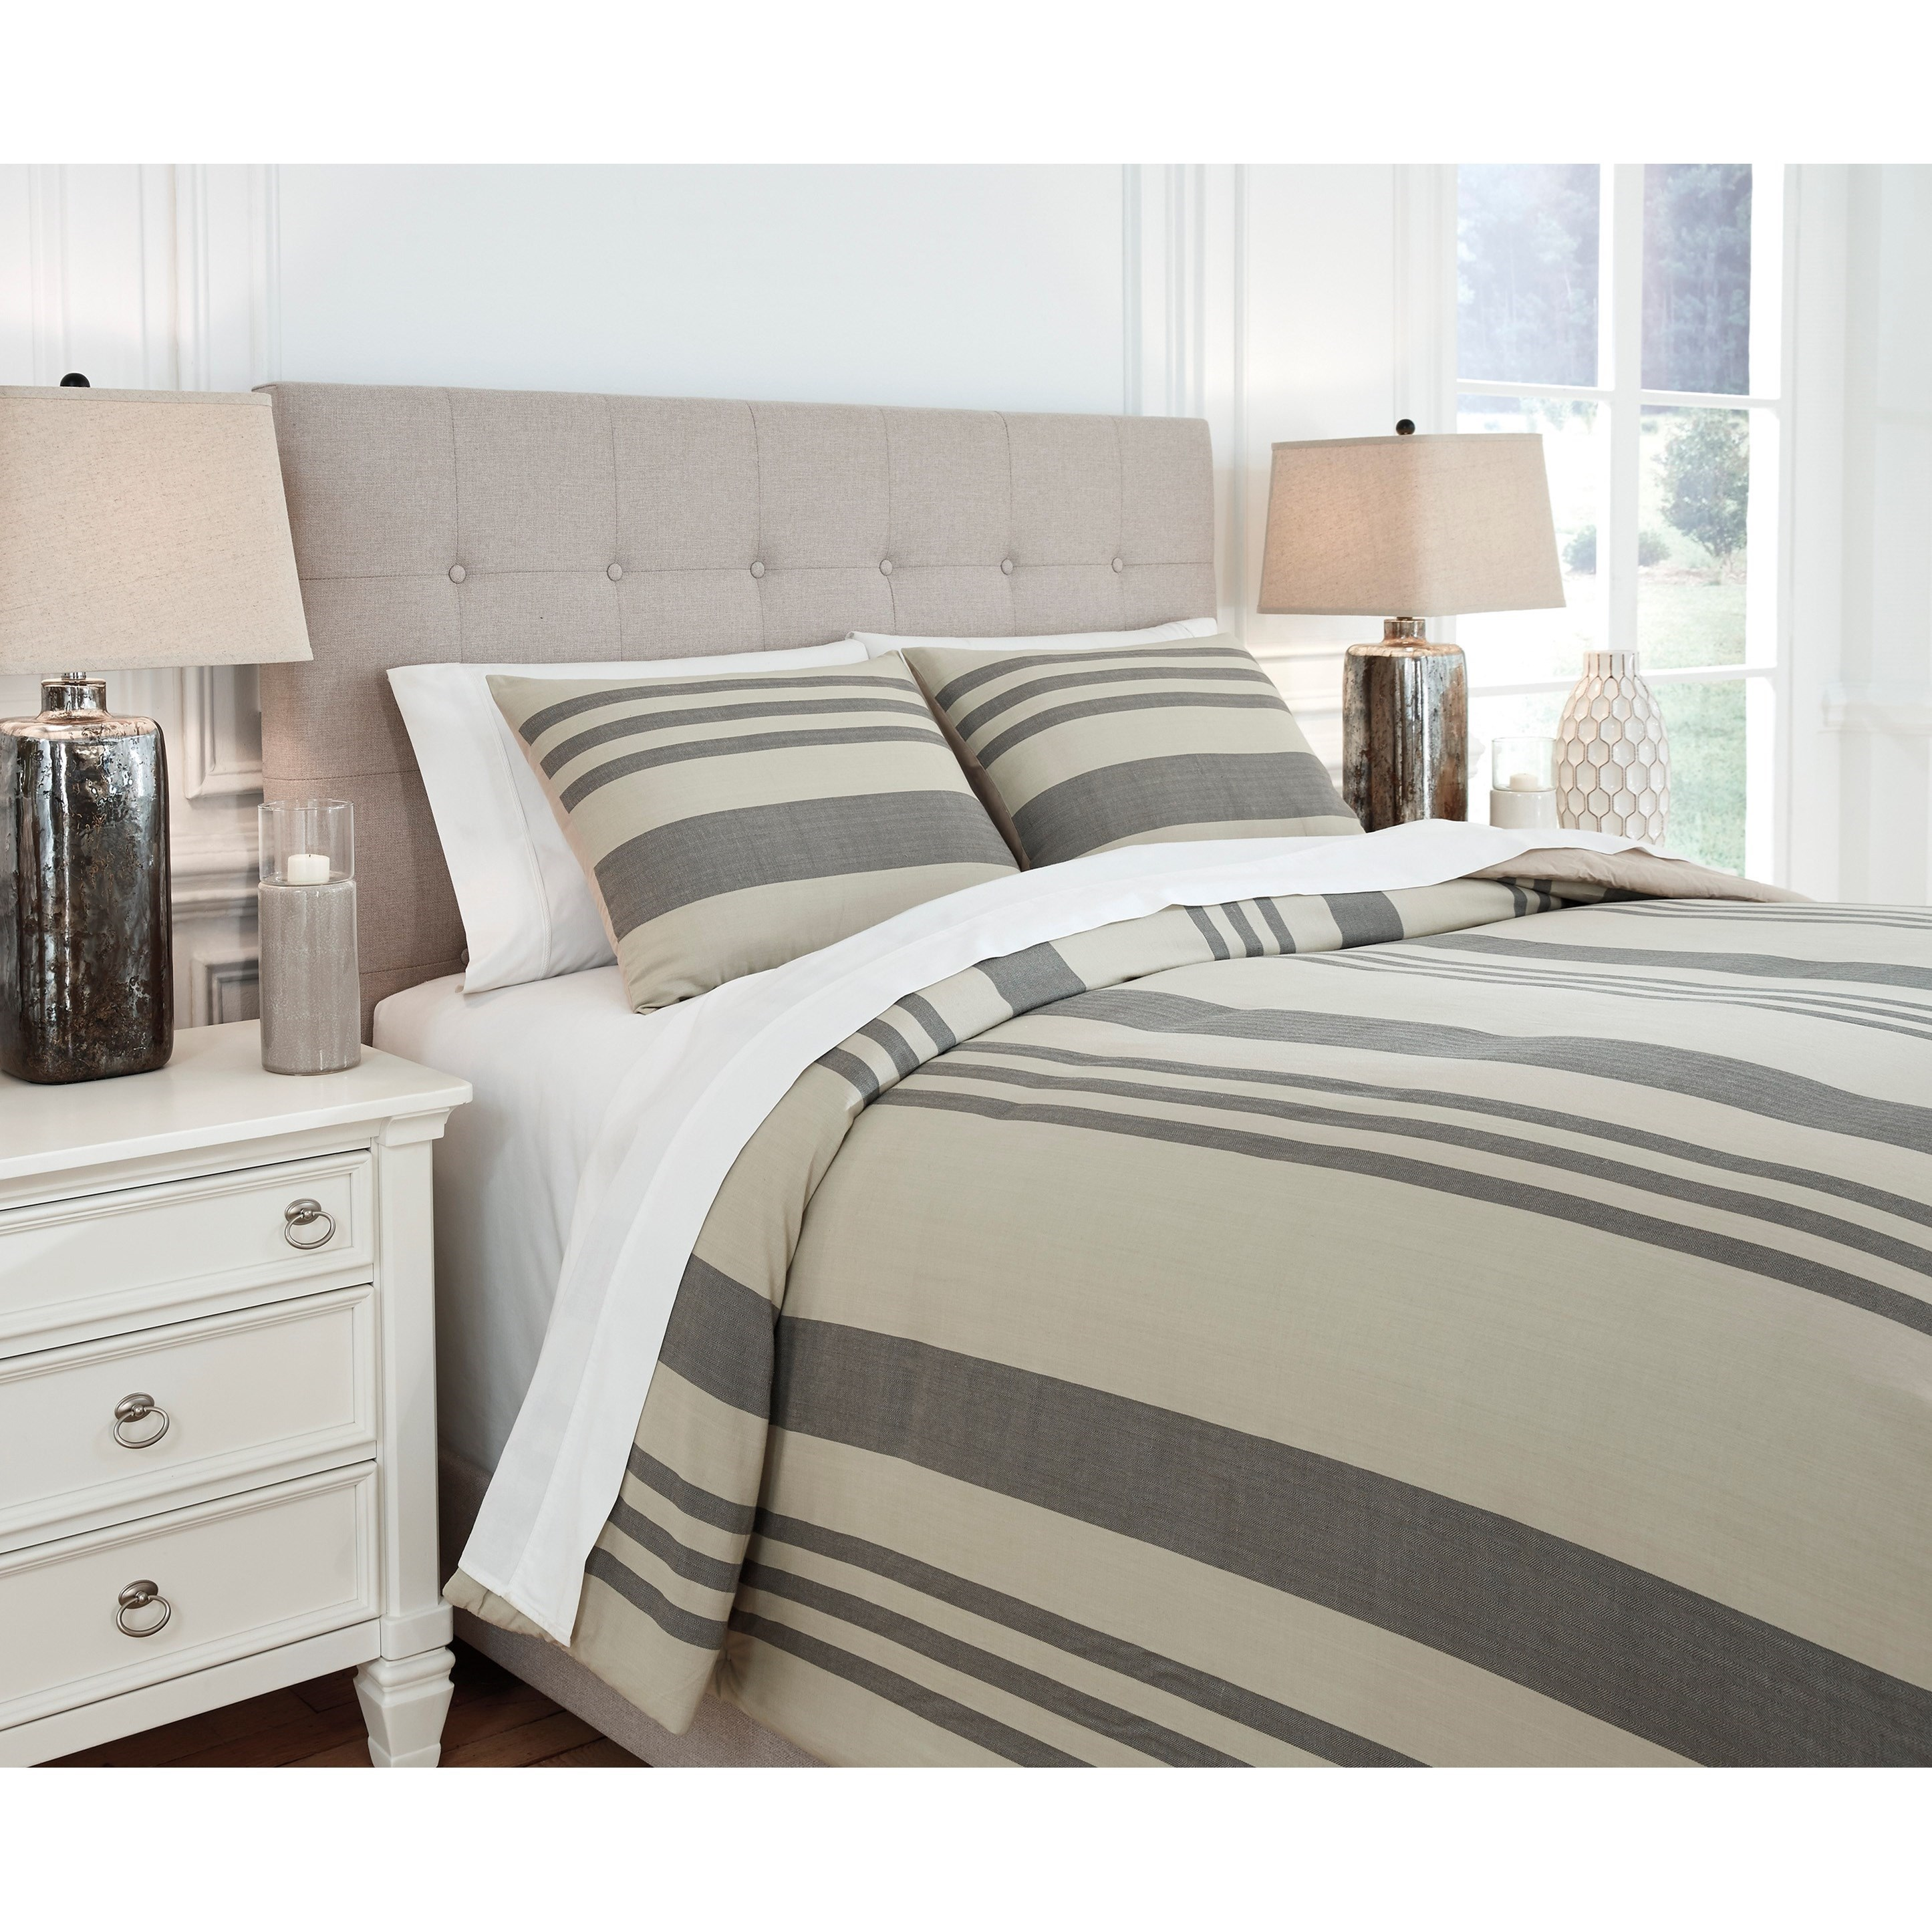 Charcoal Bedding Sets Signature Design By Ashley Bedding Sets King Schukei Natural